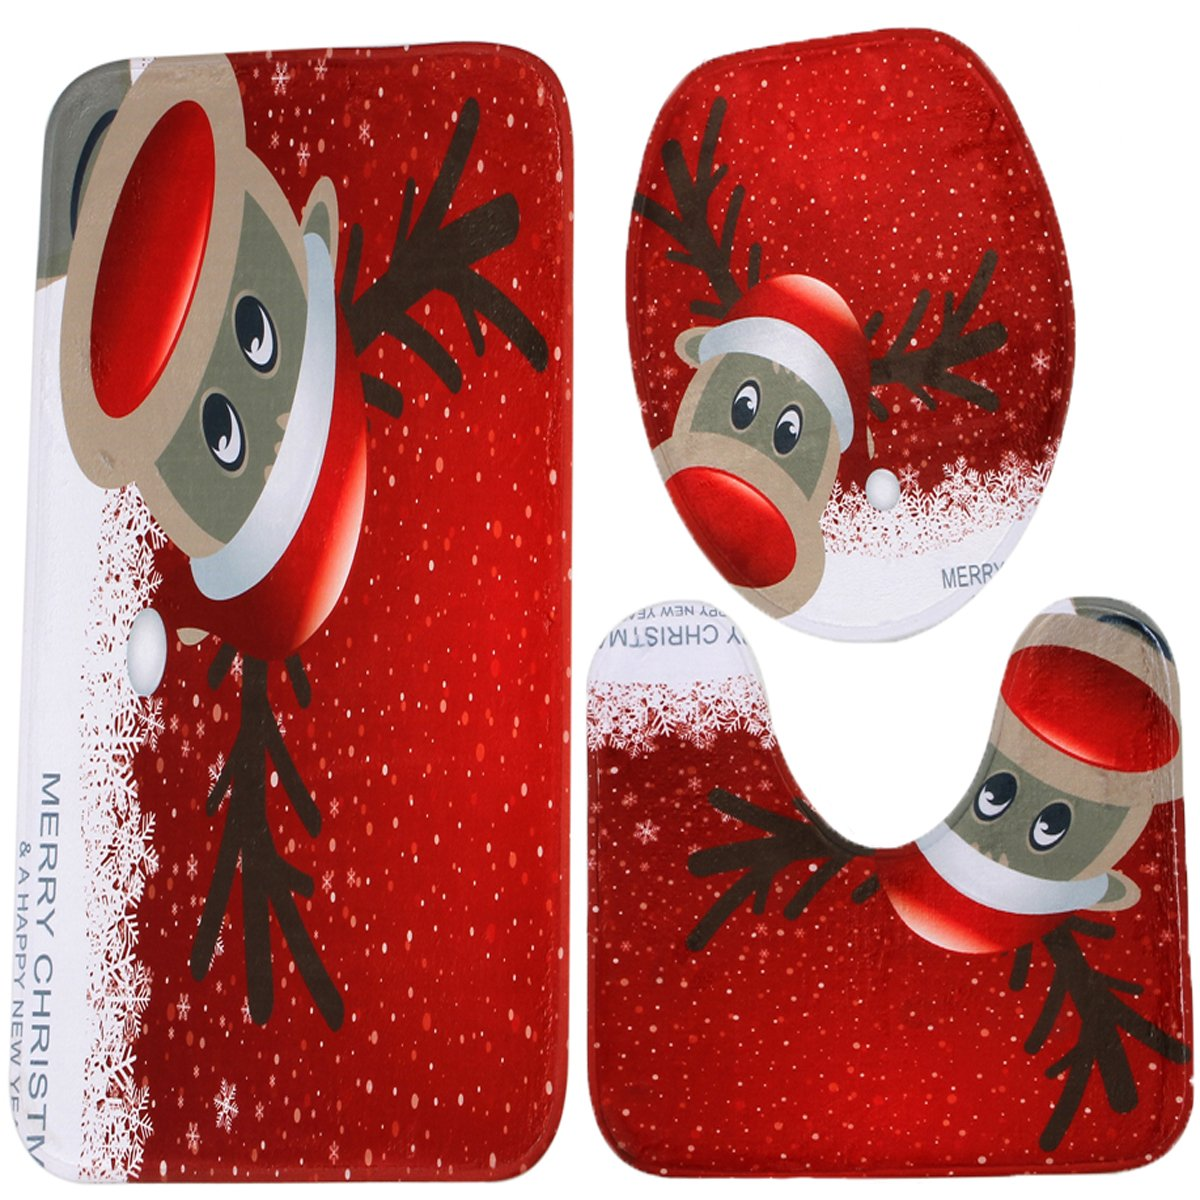 Merry Christmas Snowman Bath Mat Set, 3 Piece Bathroom Mats Set Non-Slip Bathroom Rugs/Contour Mat/Toilet Cover (Cartoon Santa Claus) Flower Tiger JJ12